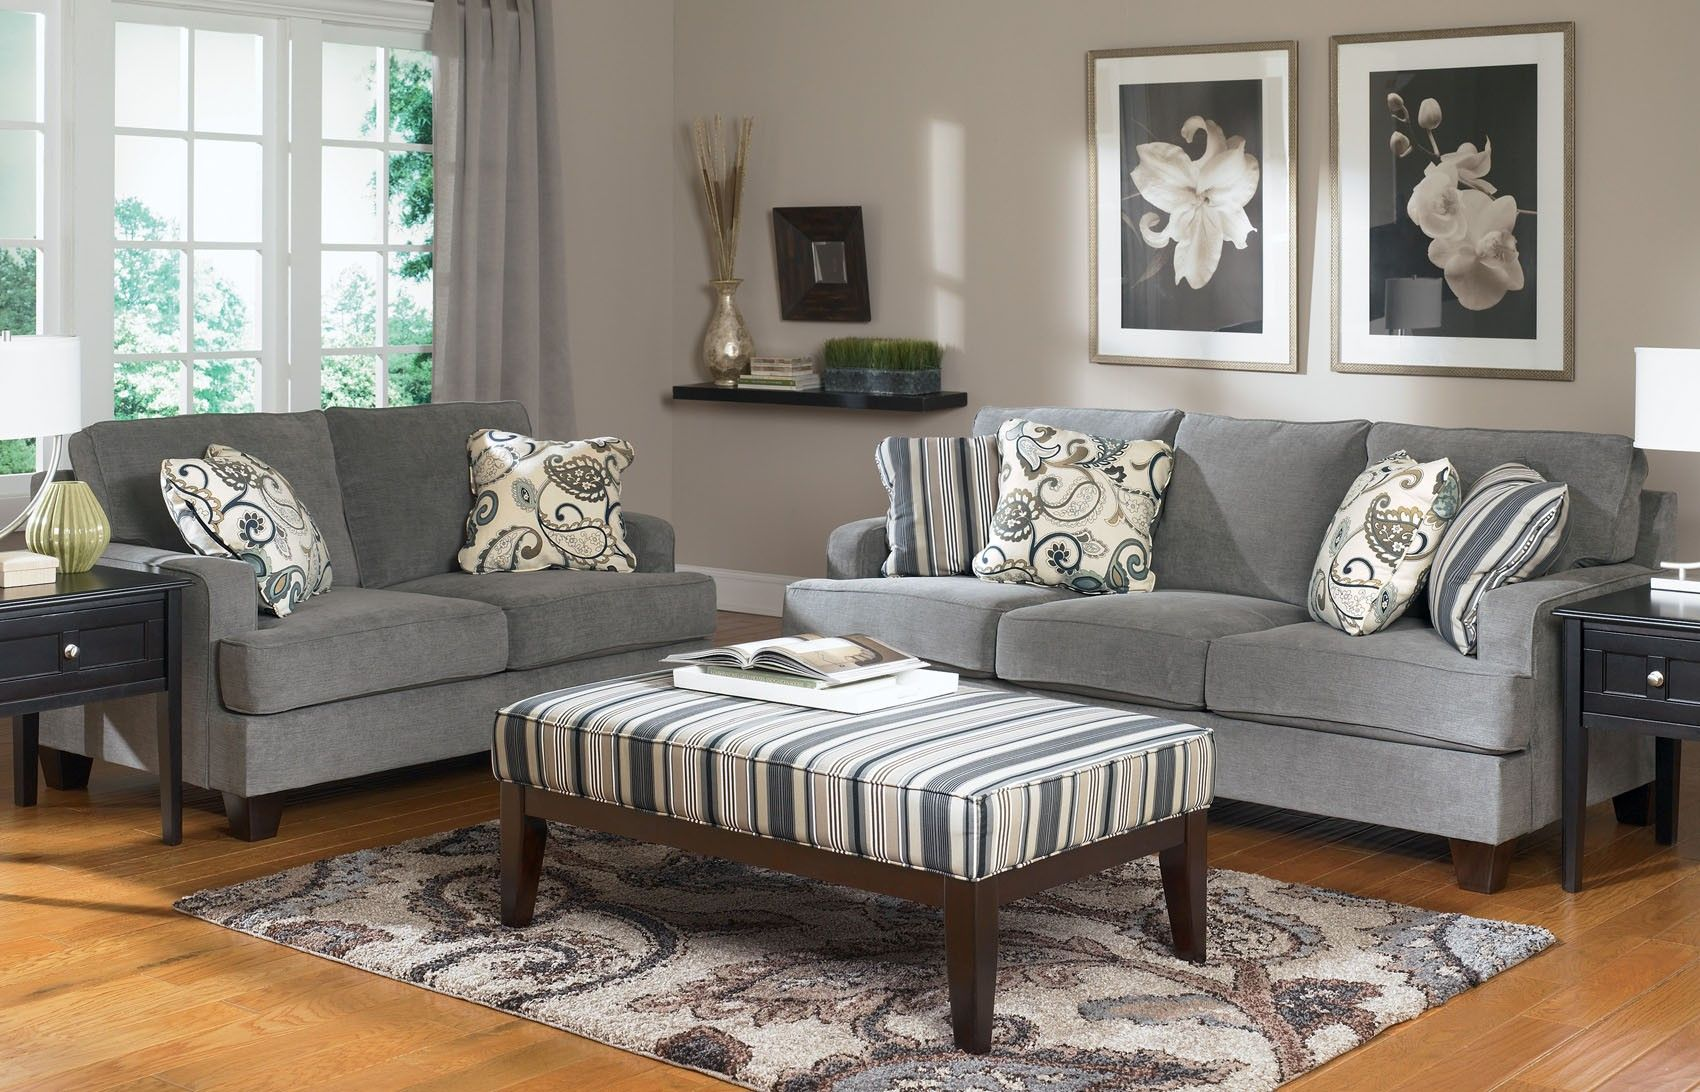 Yvette Sofa And Loveseat Set 7790035 Ashley Furniture 999 Grey